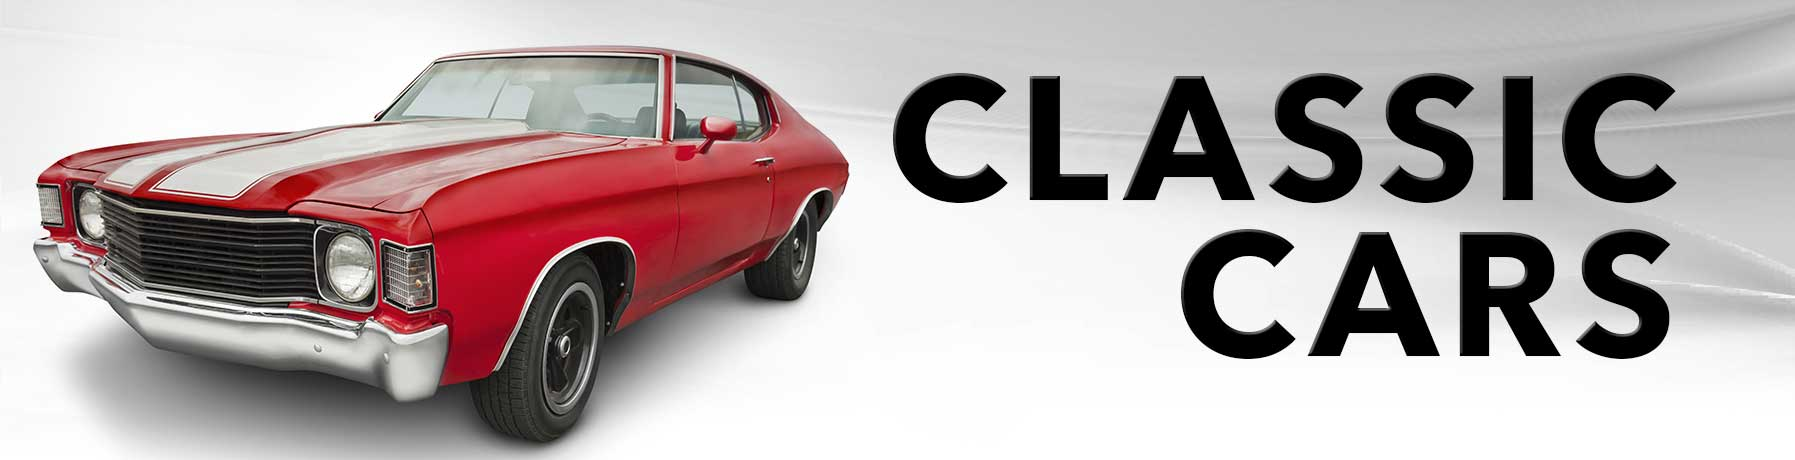 We service classic cars